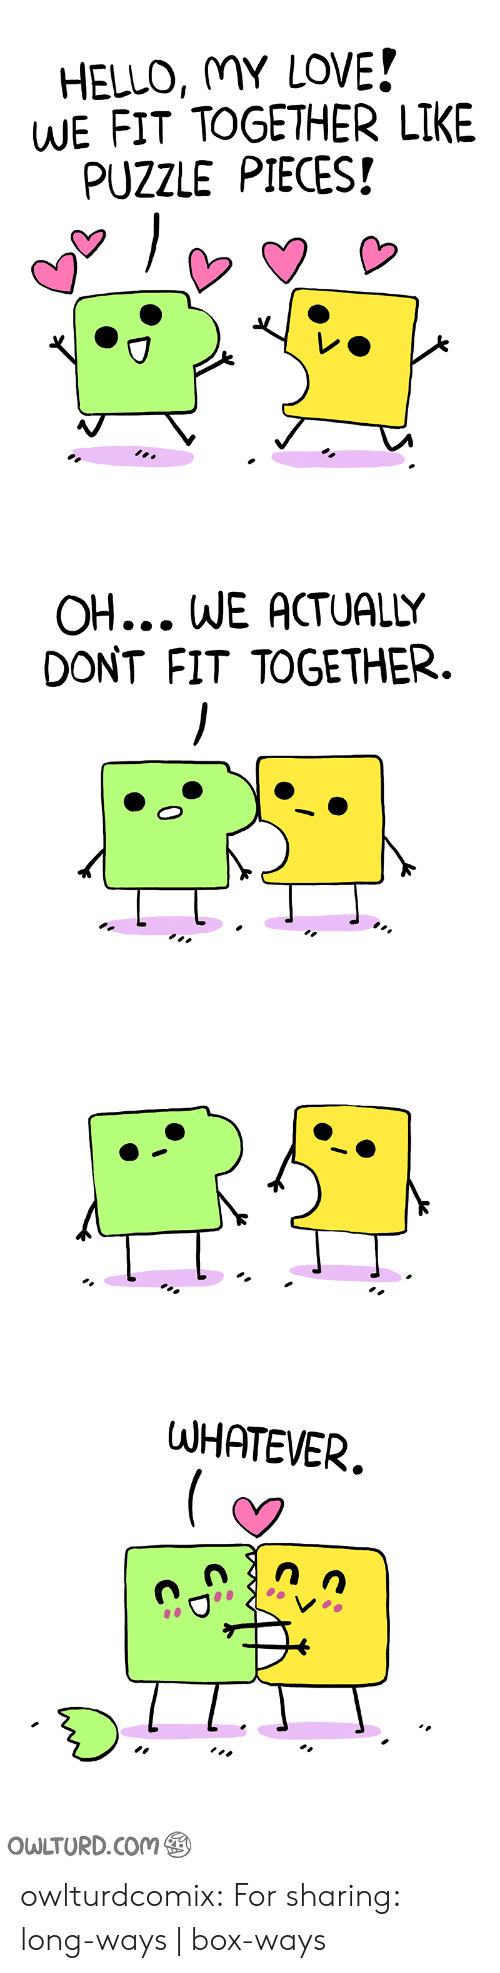 Hello My: HELLO, MY LOVE!  WE FIT TOGETHER LIKE  PUZZLE PIECES!   OH... WE ACTUALLY  DONT FIT TOGETHER.   WHATEVER.  OWLTURD.COM  C owlturdcomix:  For sharing: long-ways | box-ways